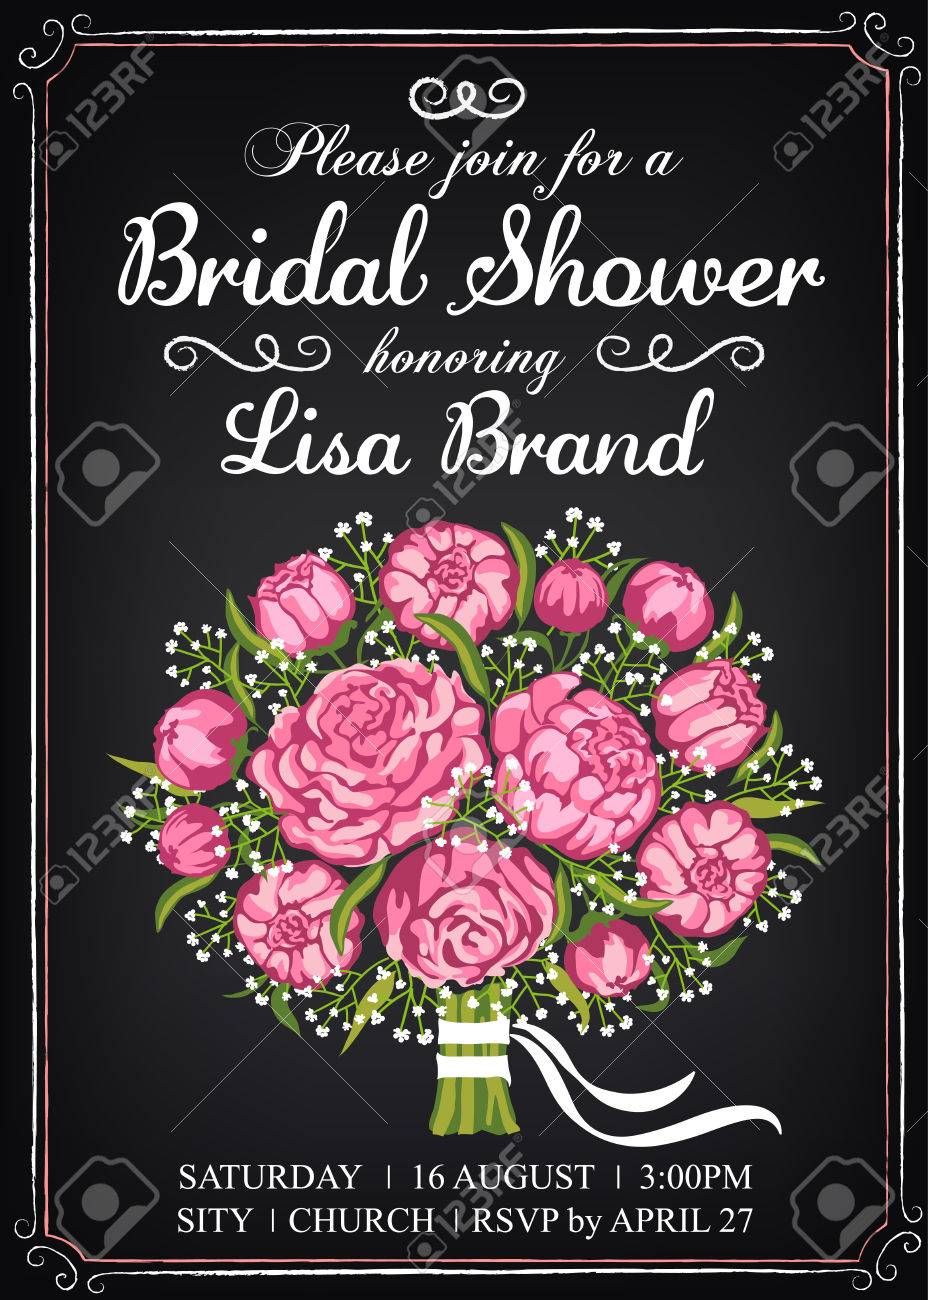 invitation template with beautiful wedding bouquet bridal shower vintage style chalkboard stock vector